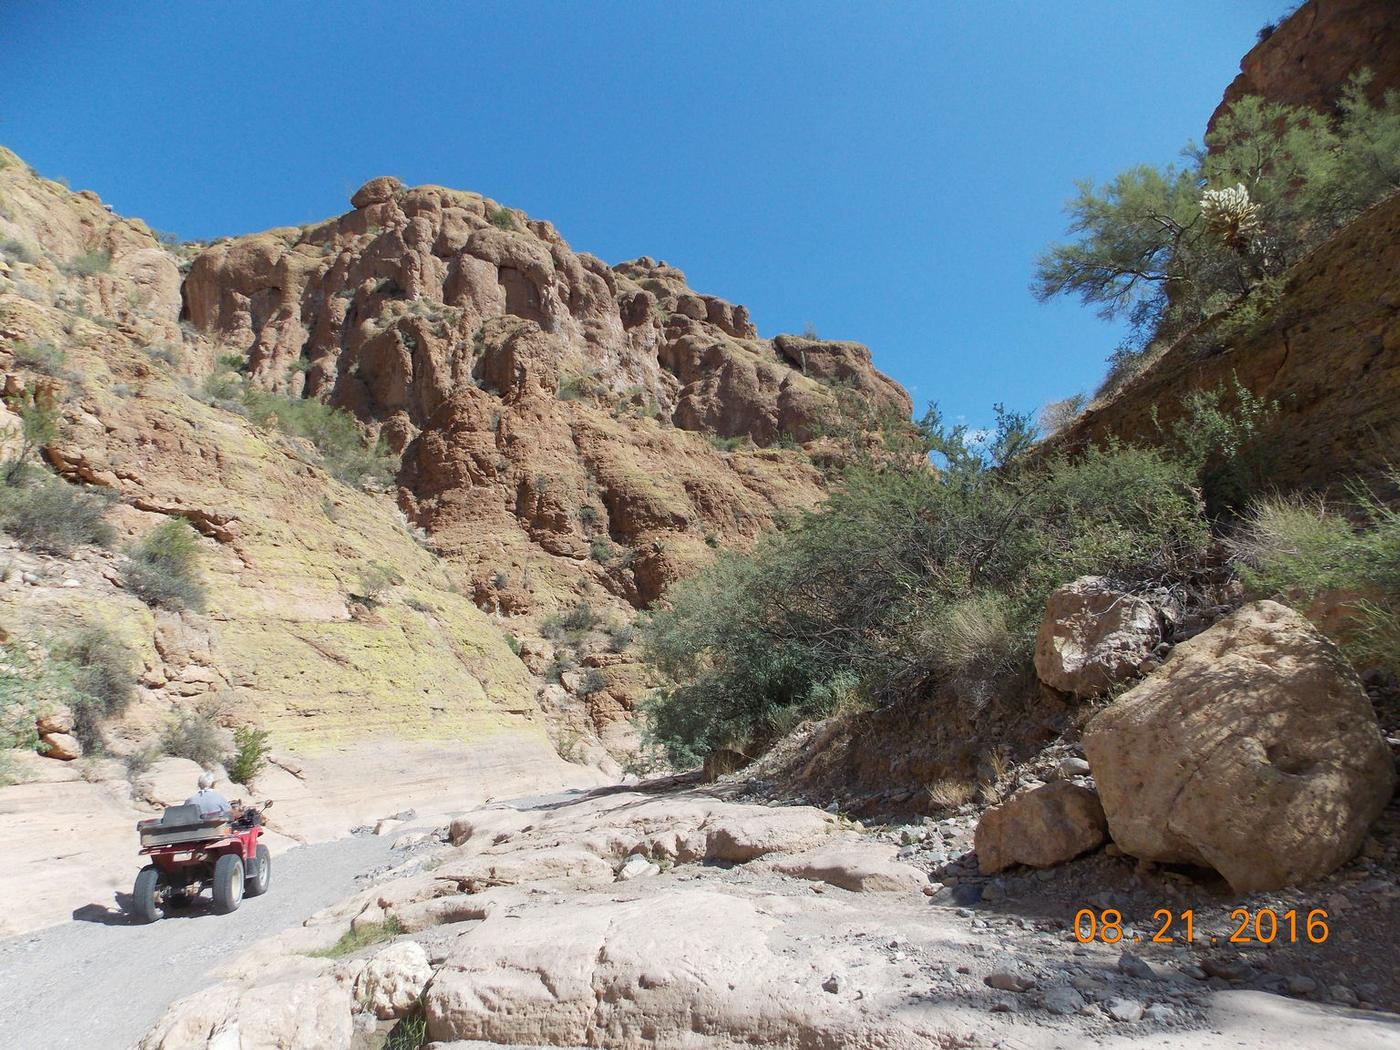 Box Canyon ATV Tour in Florence, Arizona